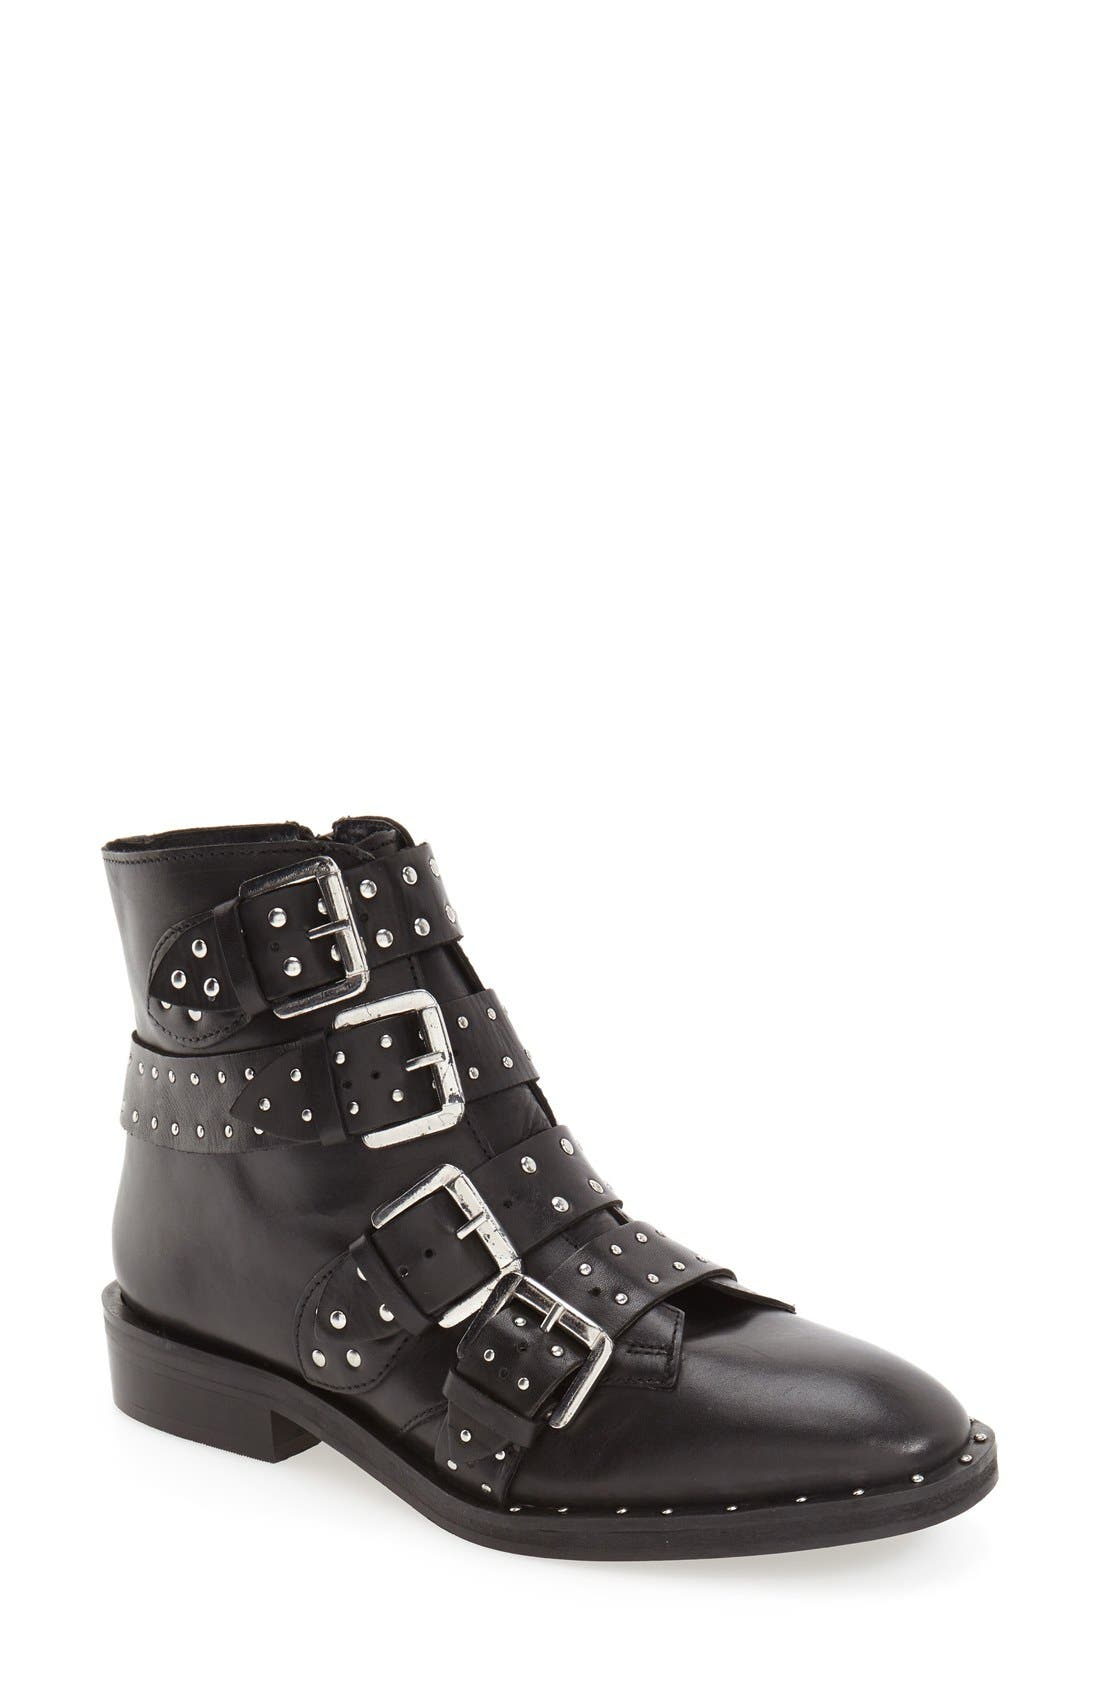 Main Image - Topshop 'Amy' Studded Buckle Bootie (Women)